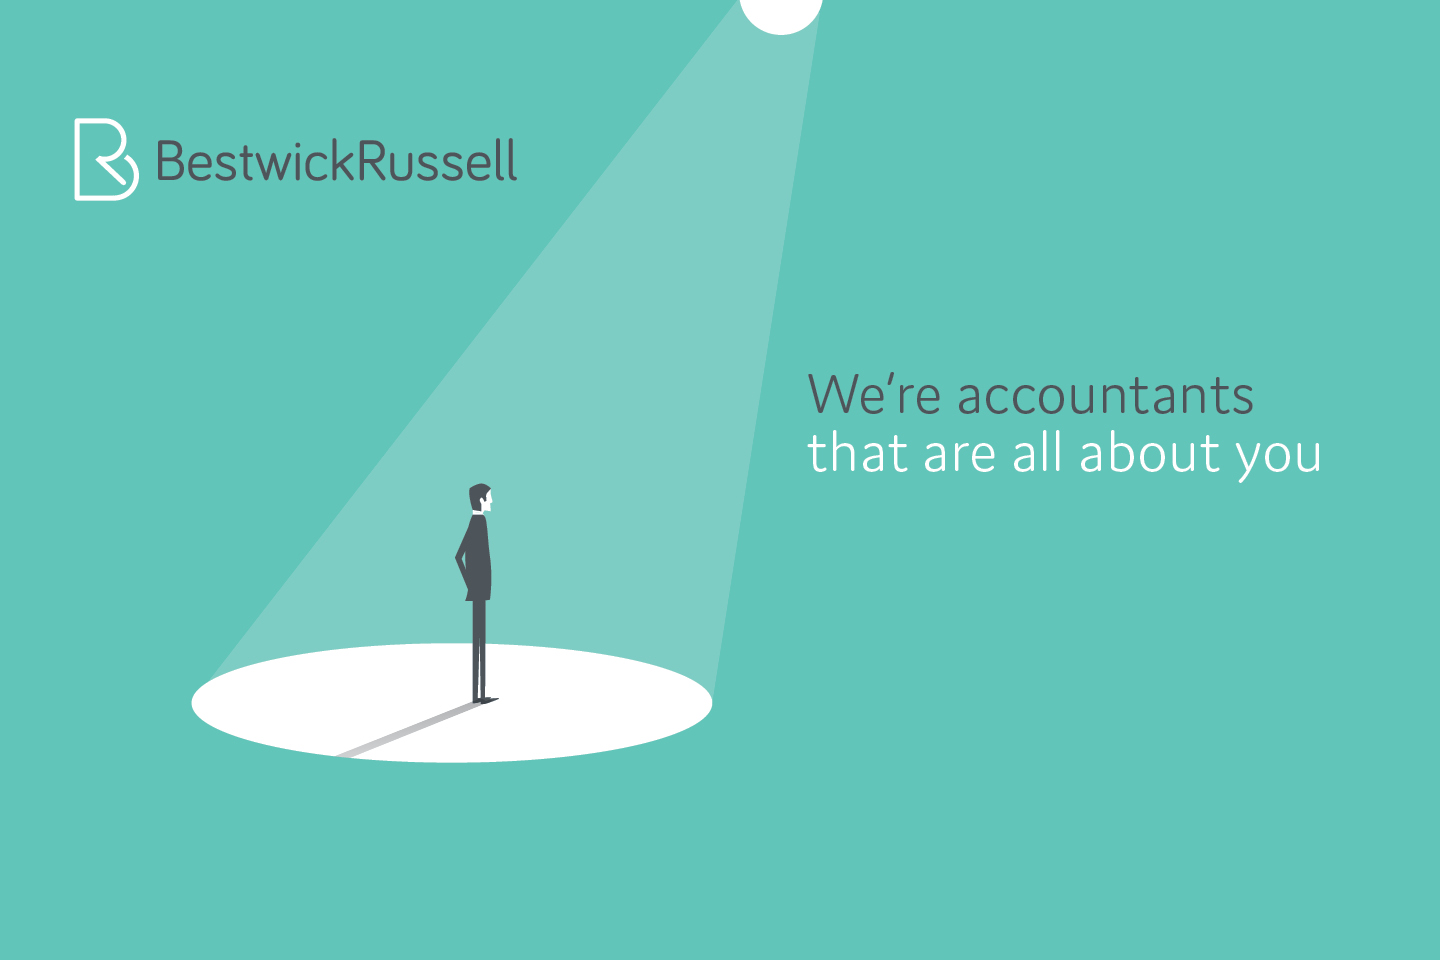 Bestwick Russell branding with spotlight